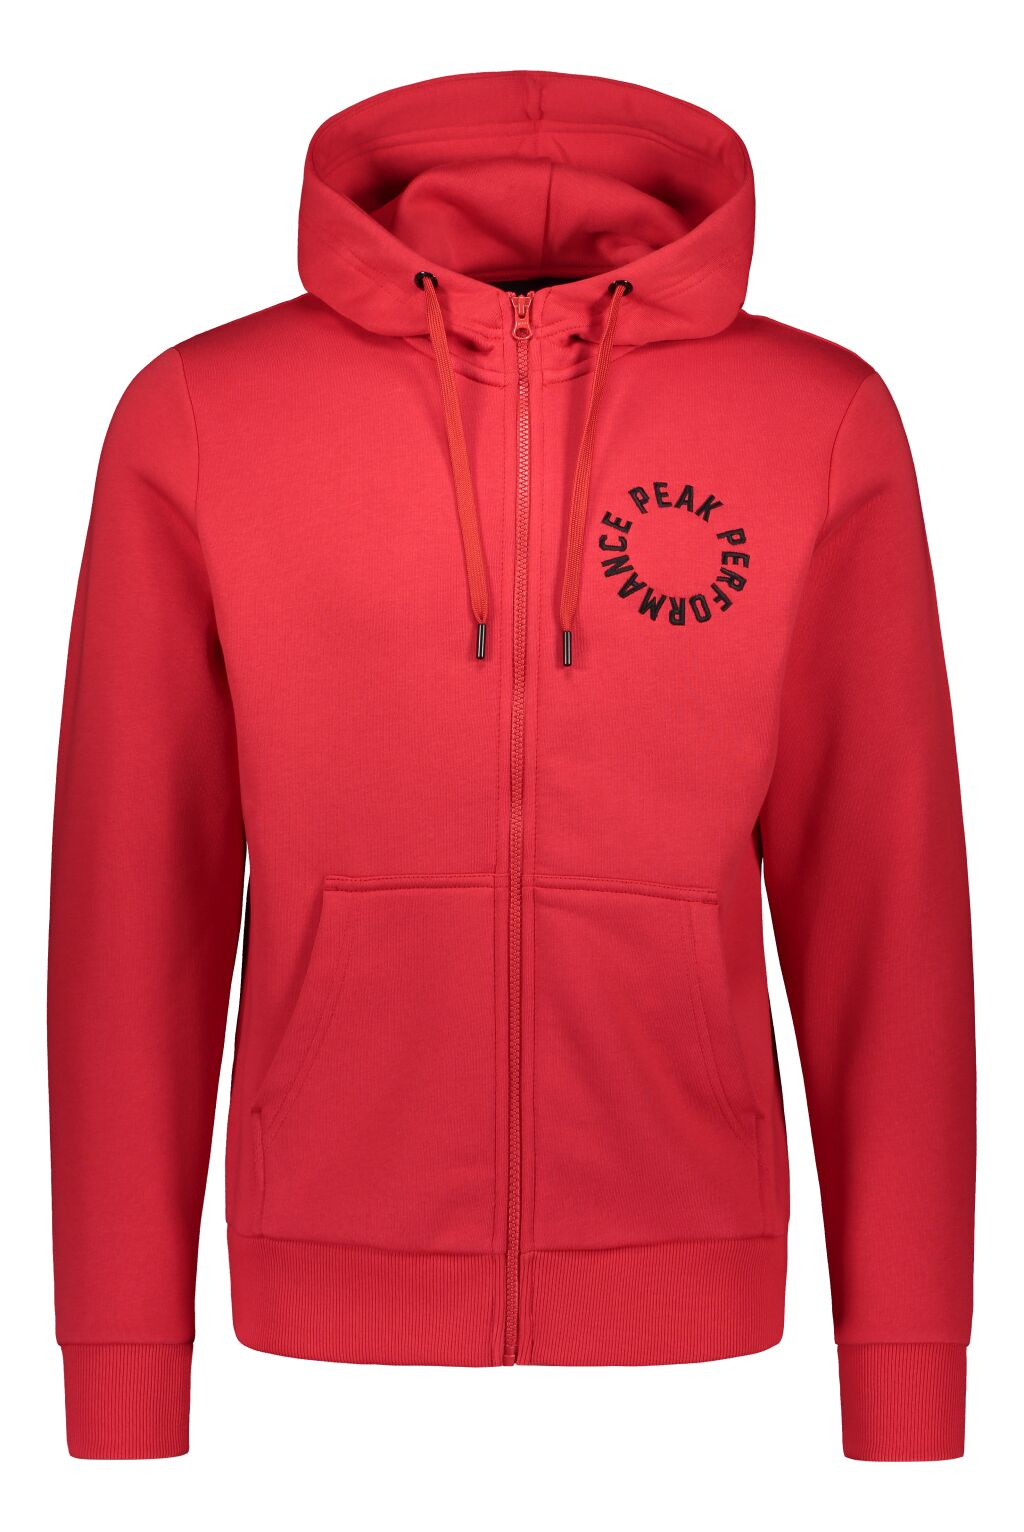 Peak Performance Fi Zip Hood